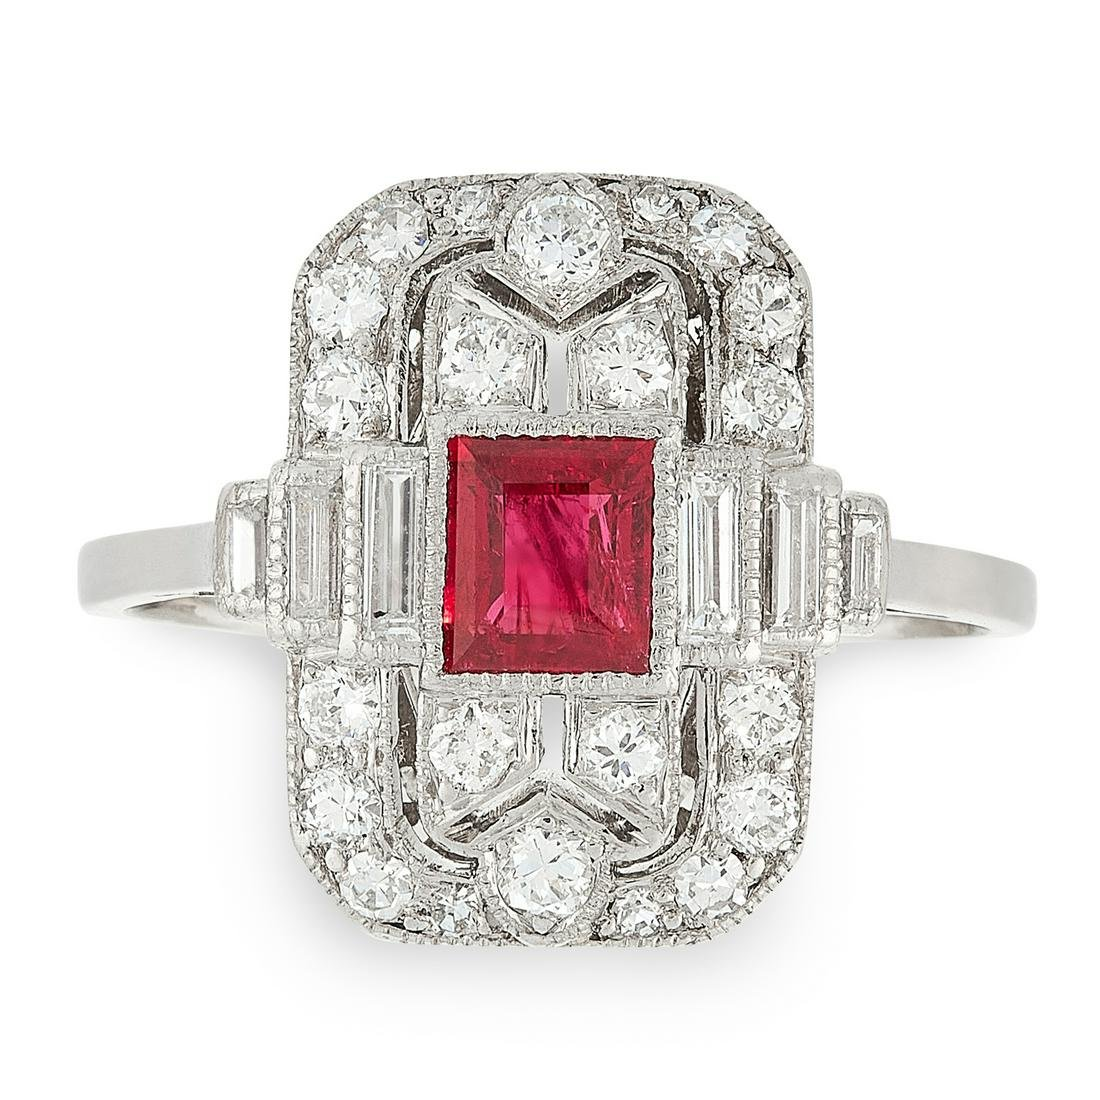 A RUBY AND DIAMOND DRESS RING in Art Deco design, set